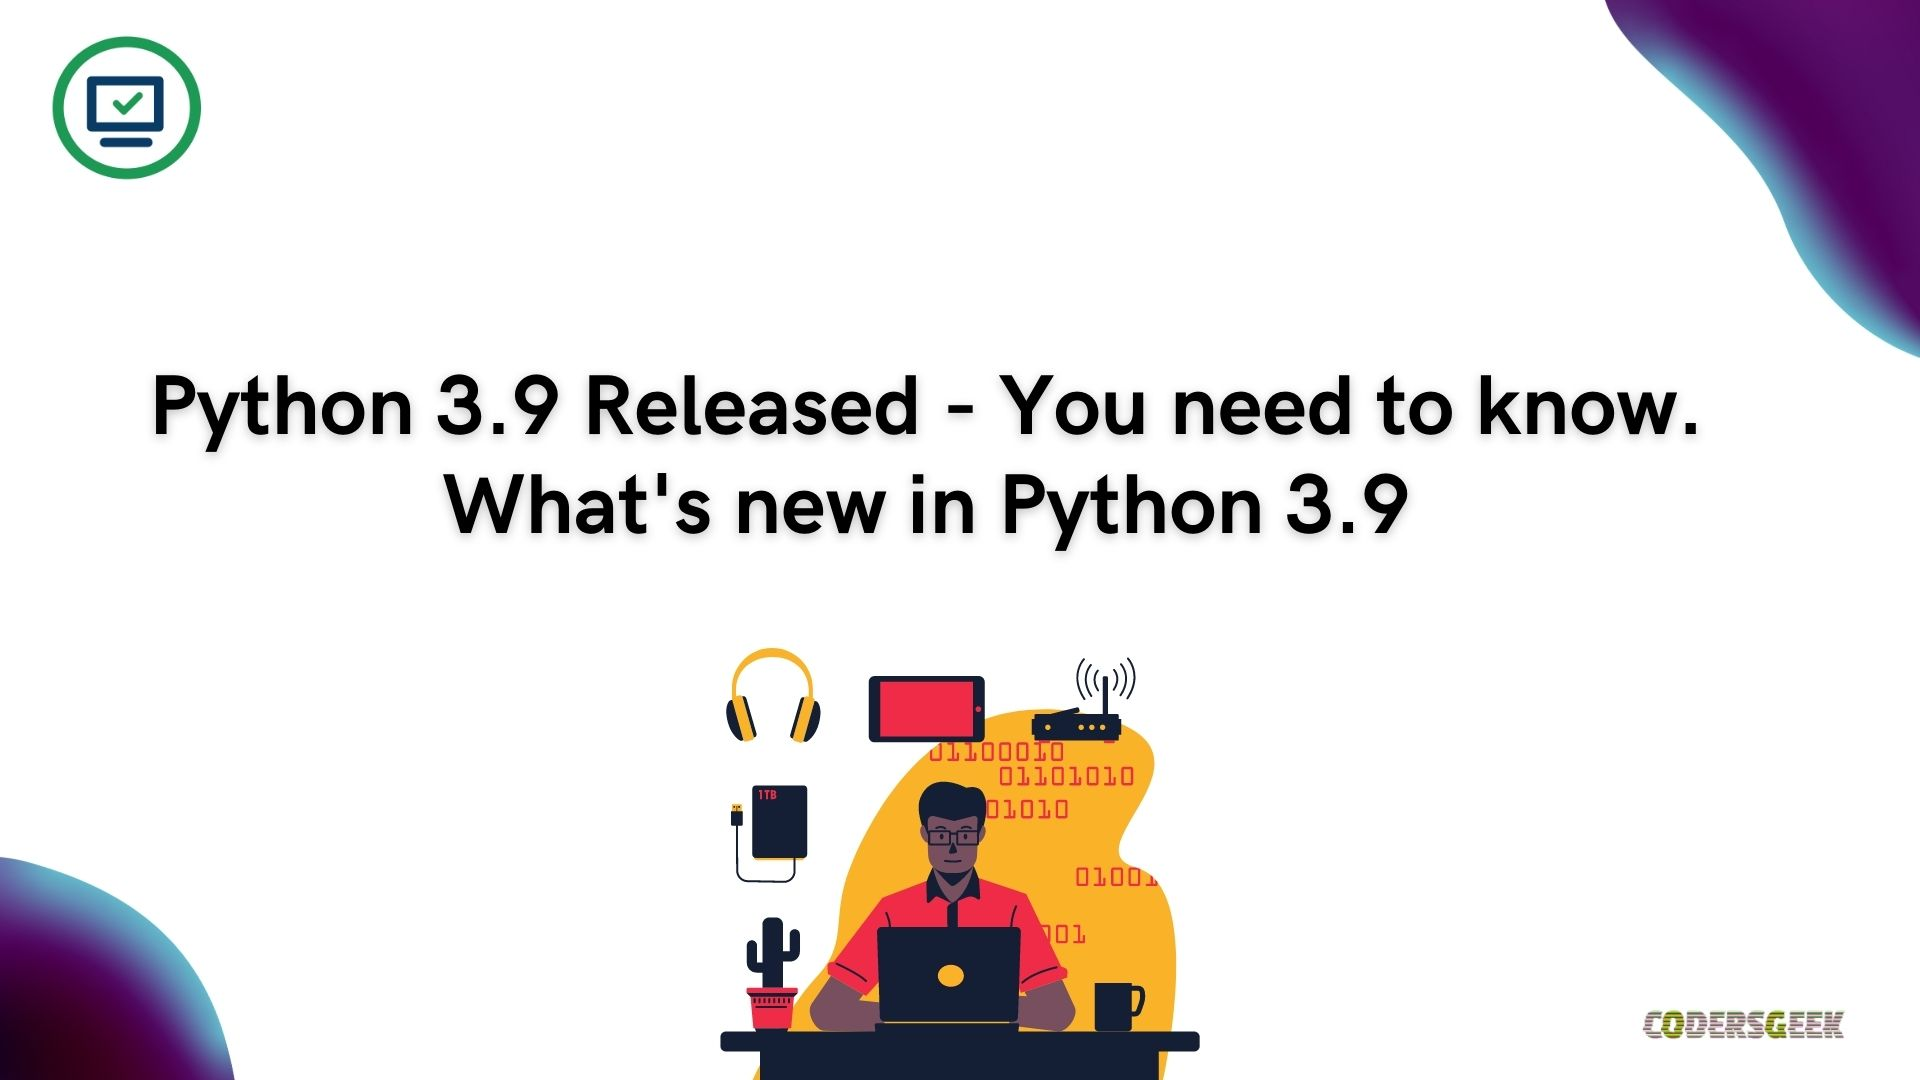 Python 3.9 Released - How to install Python3.9 and What's new in Python 3.9 ?